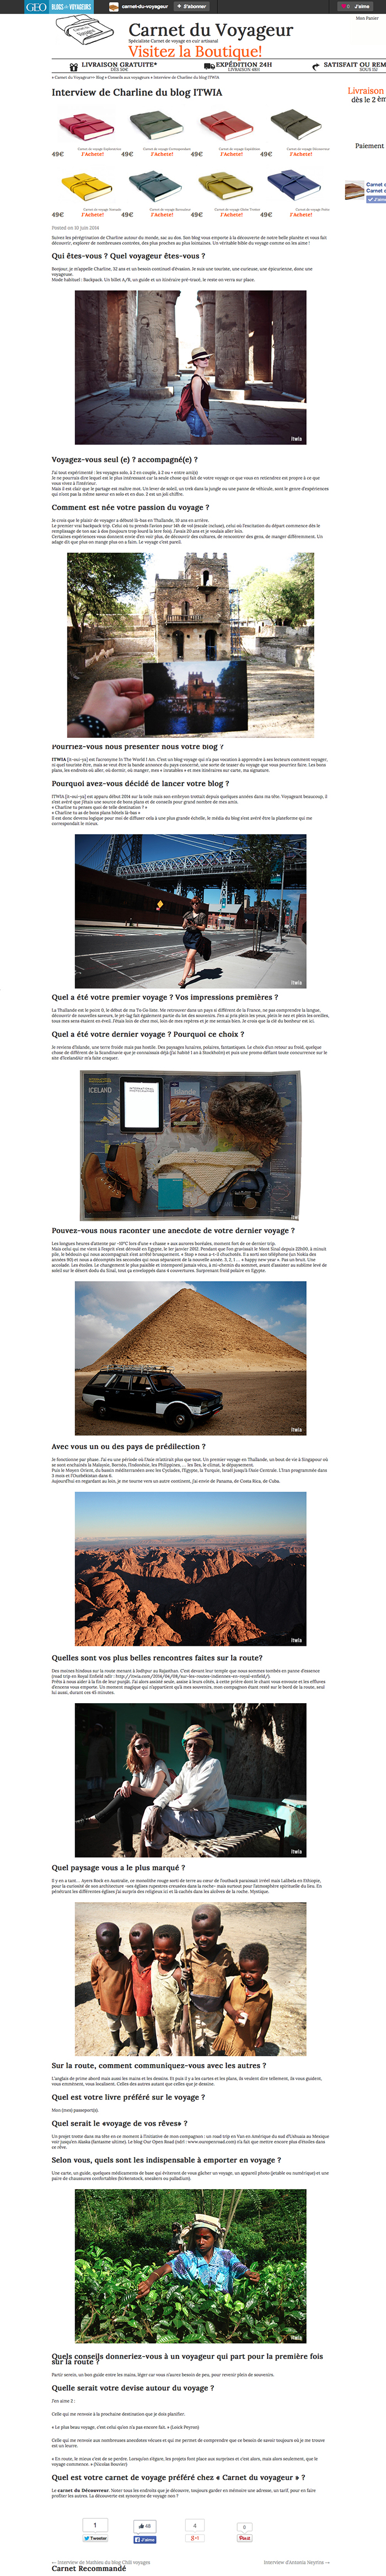 Itwia_Presse_CarnetduVoyageur_Itw_700px